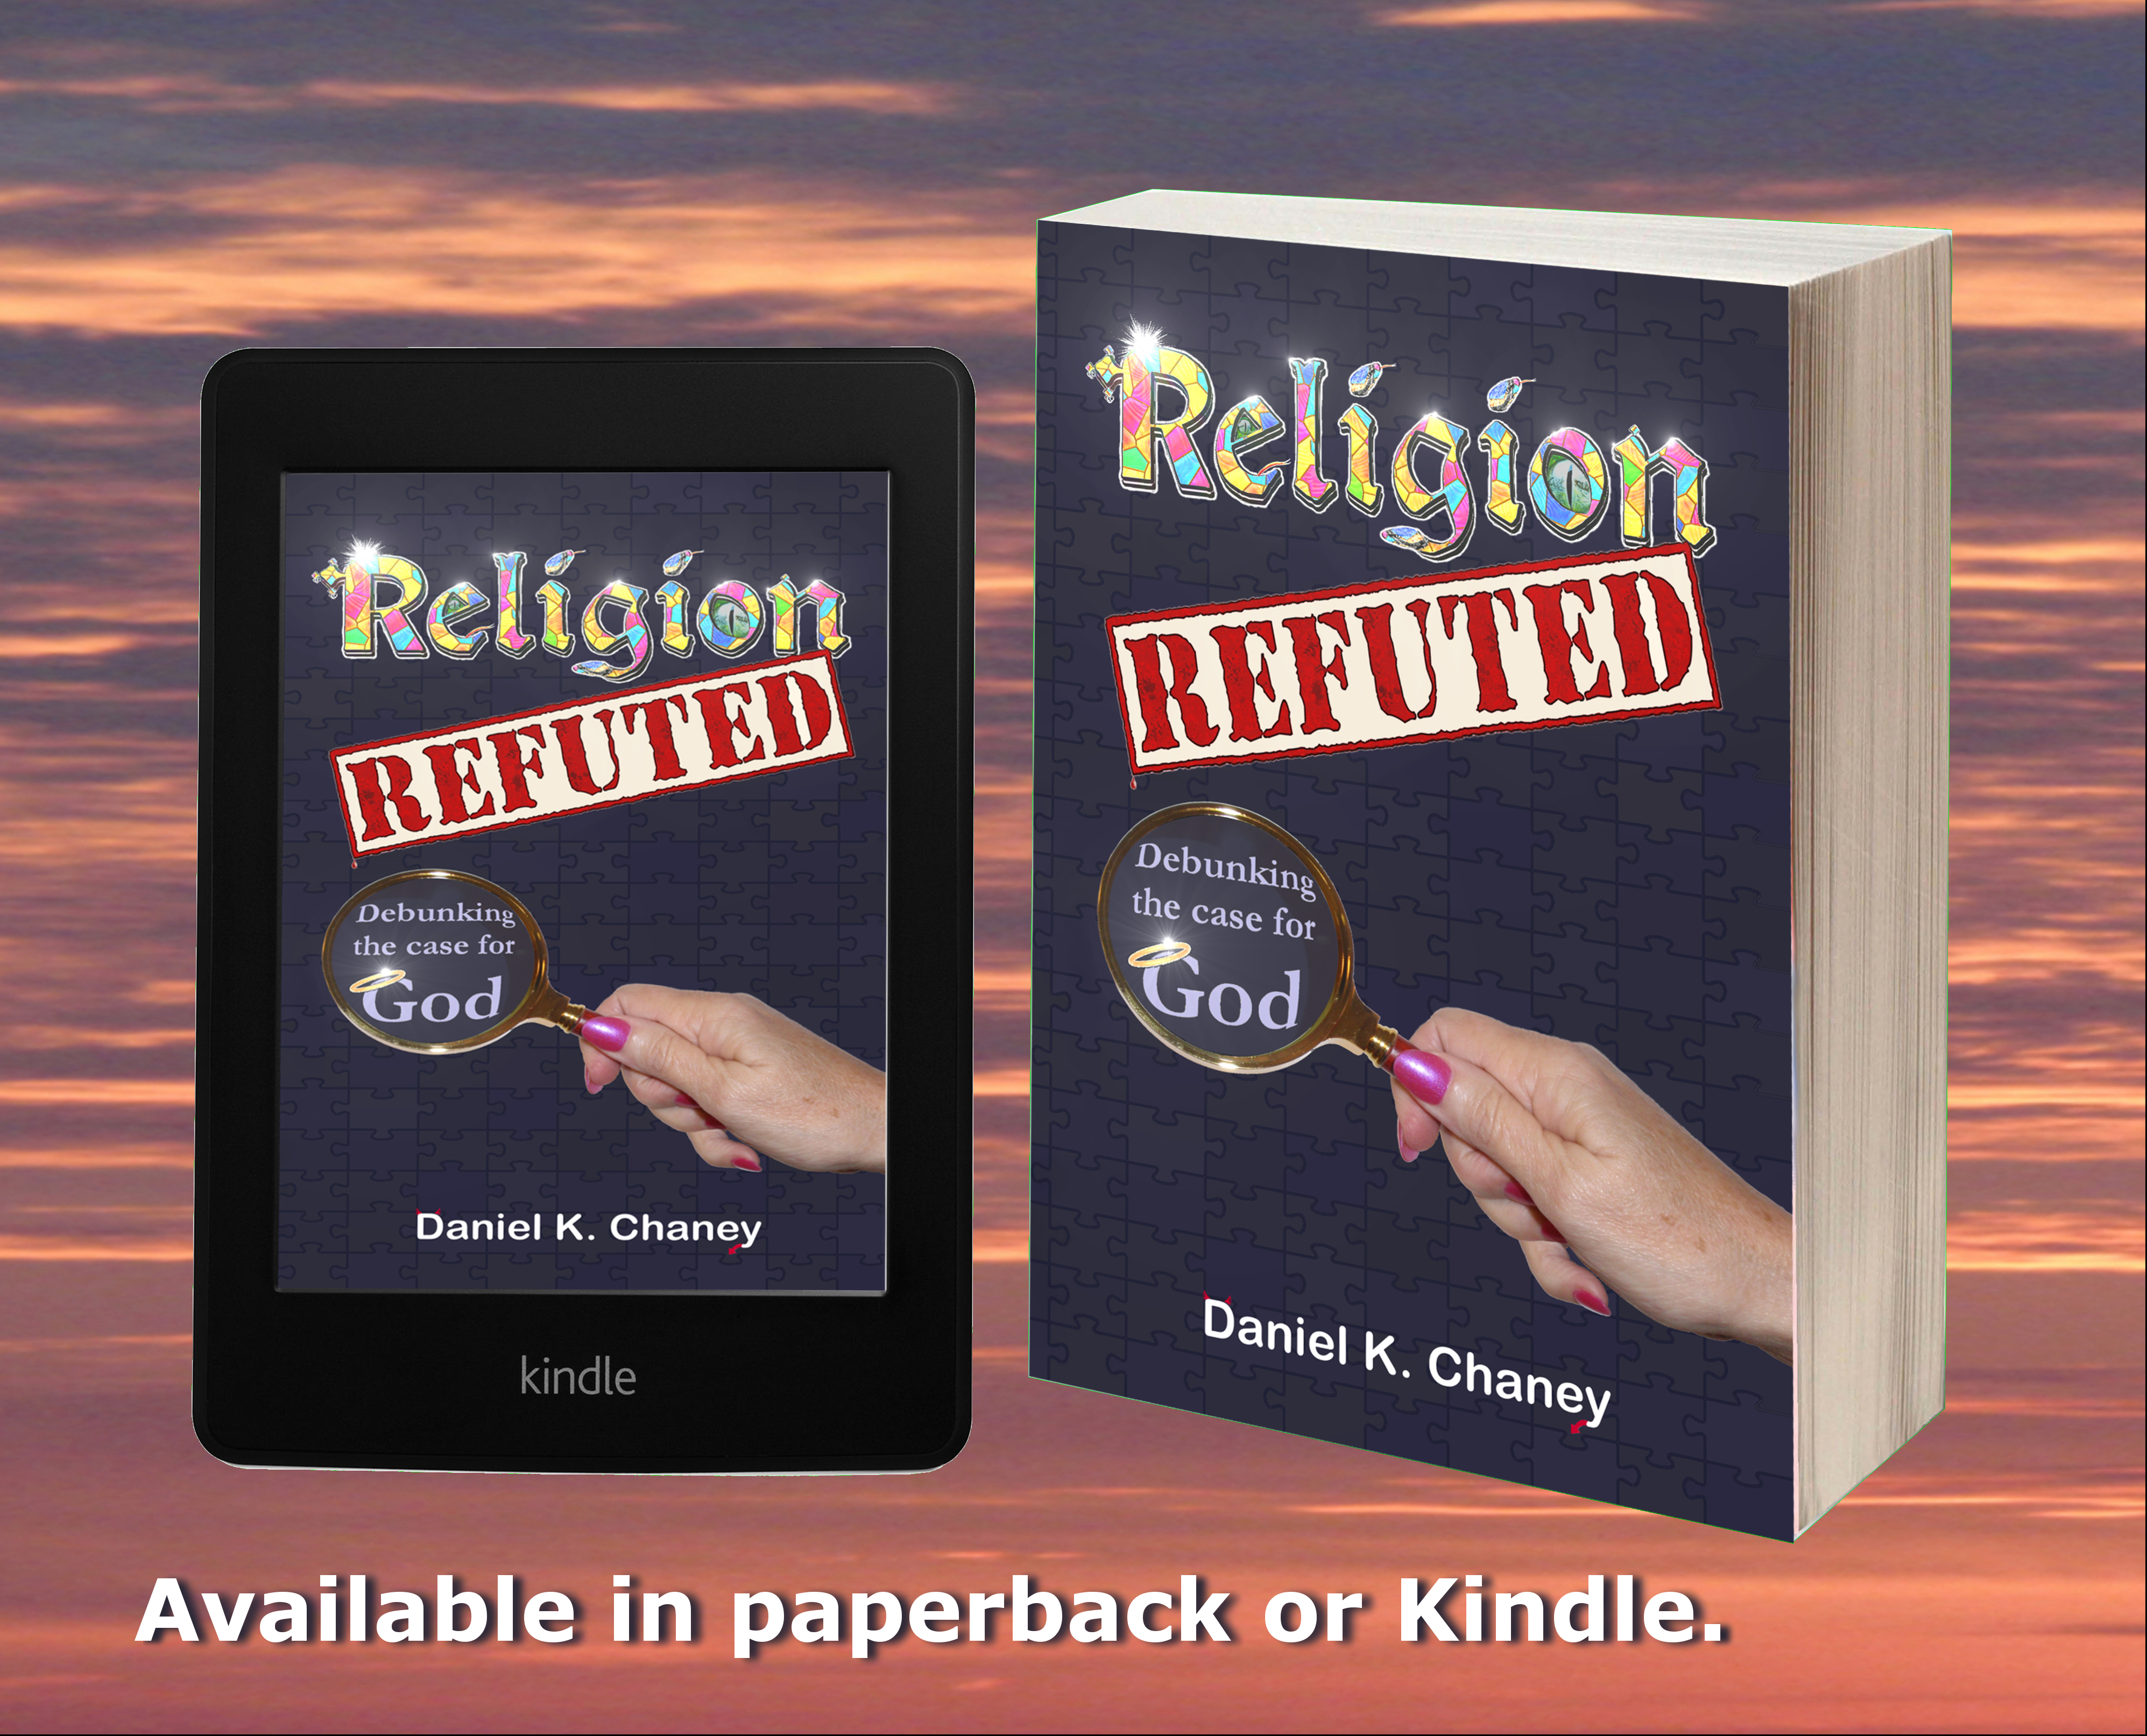 Religion Refuted is available in paperback or Kindle.